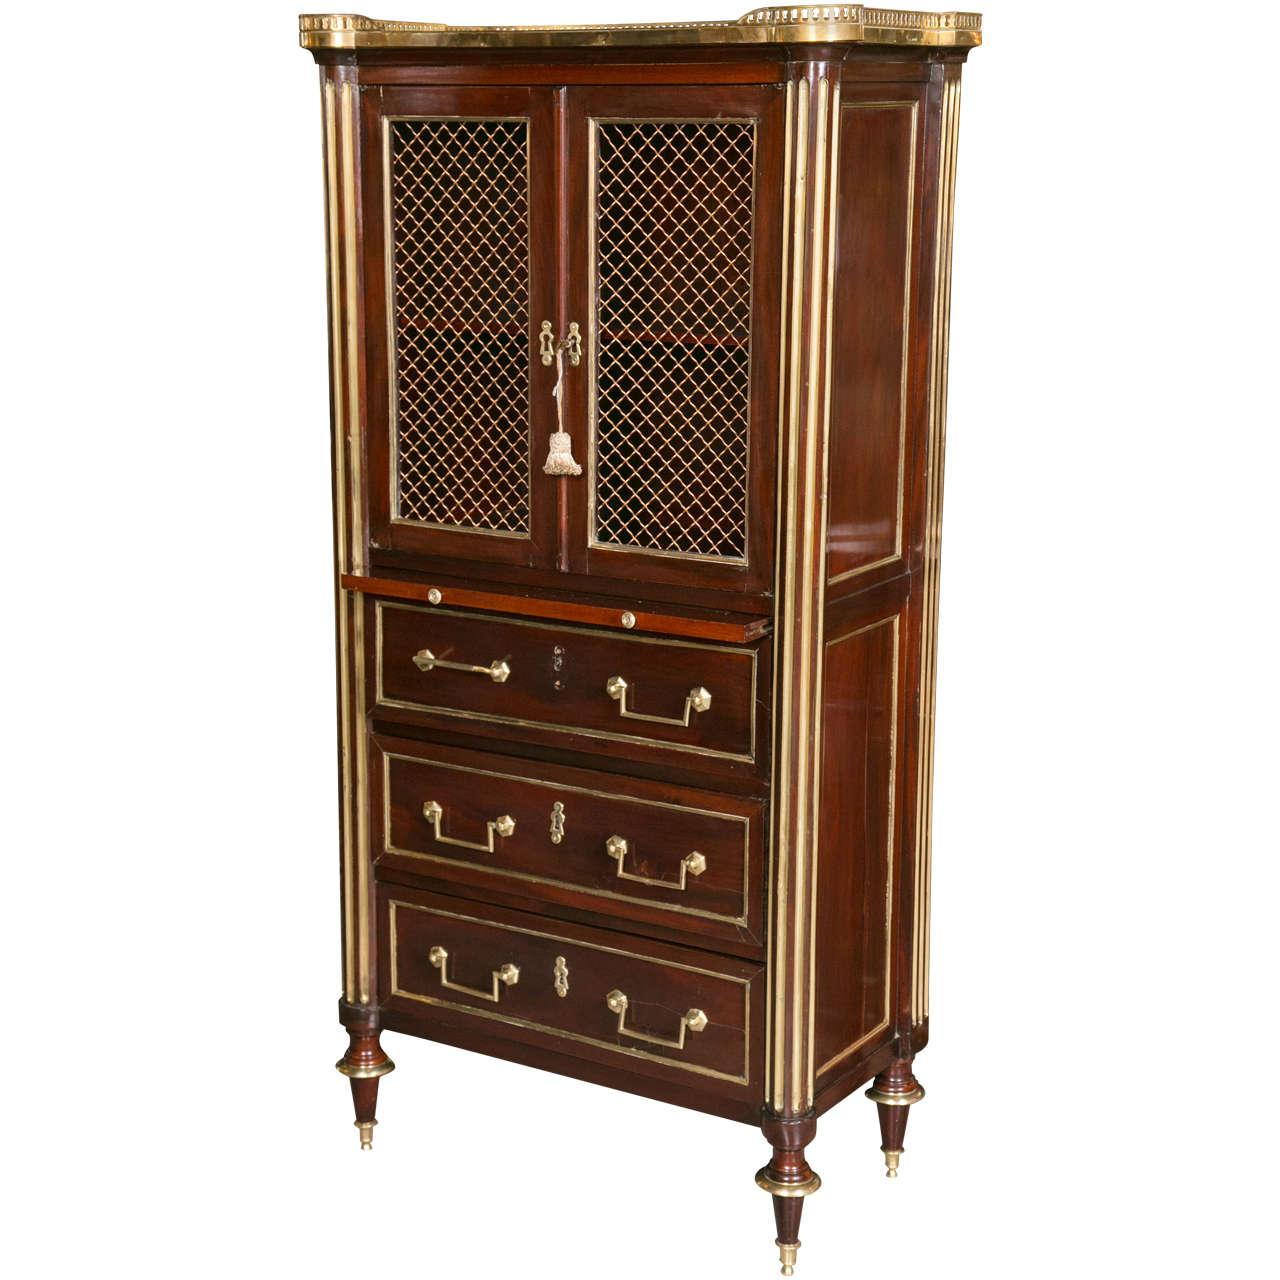 Delightful Mahogany Storage Chest Or Desk Attributed To Maison Jansen   Image 10 Of 10